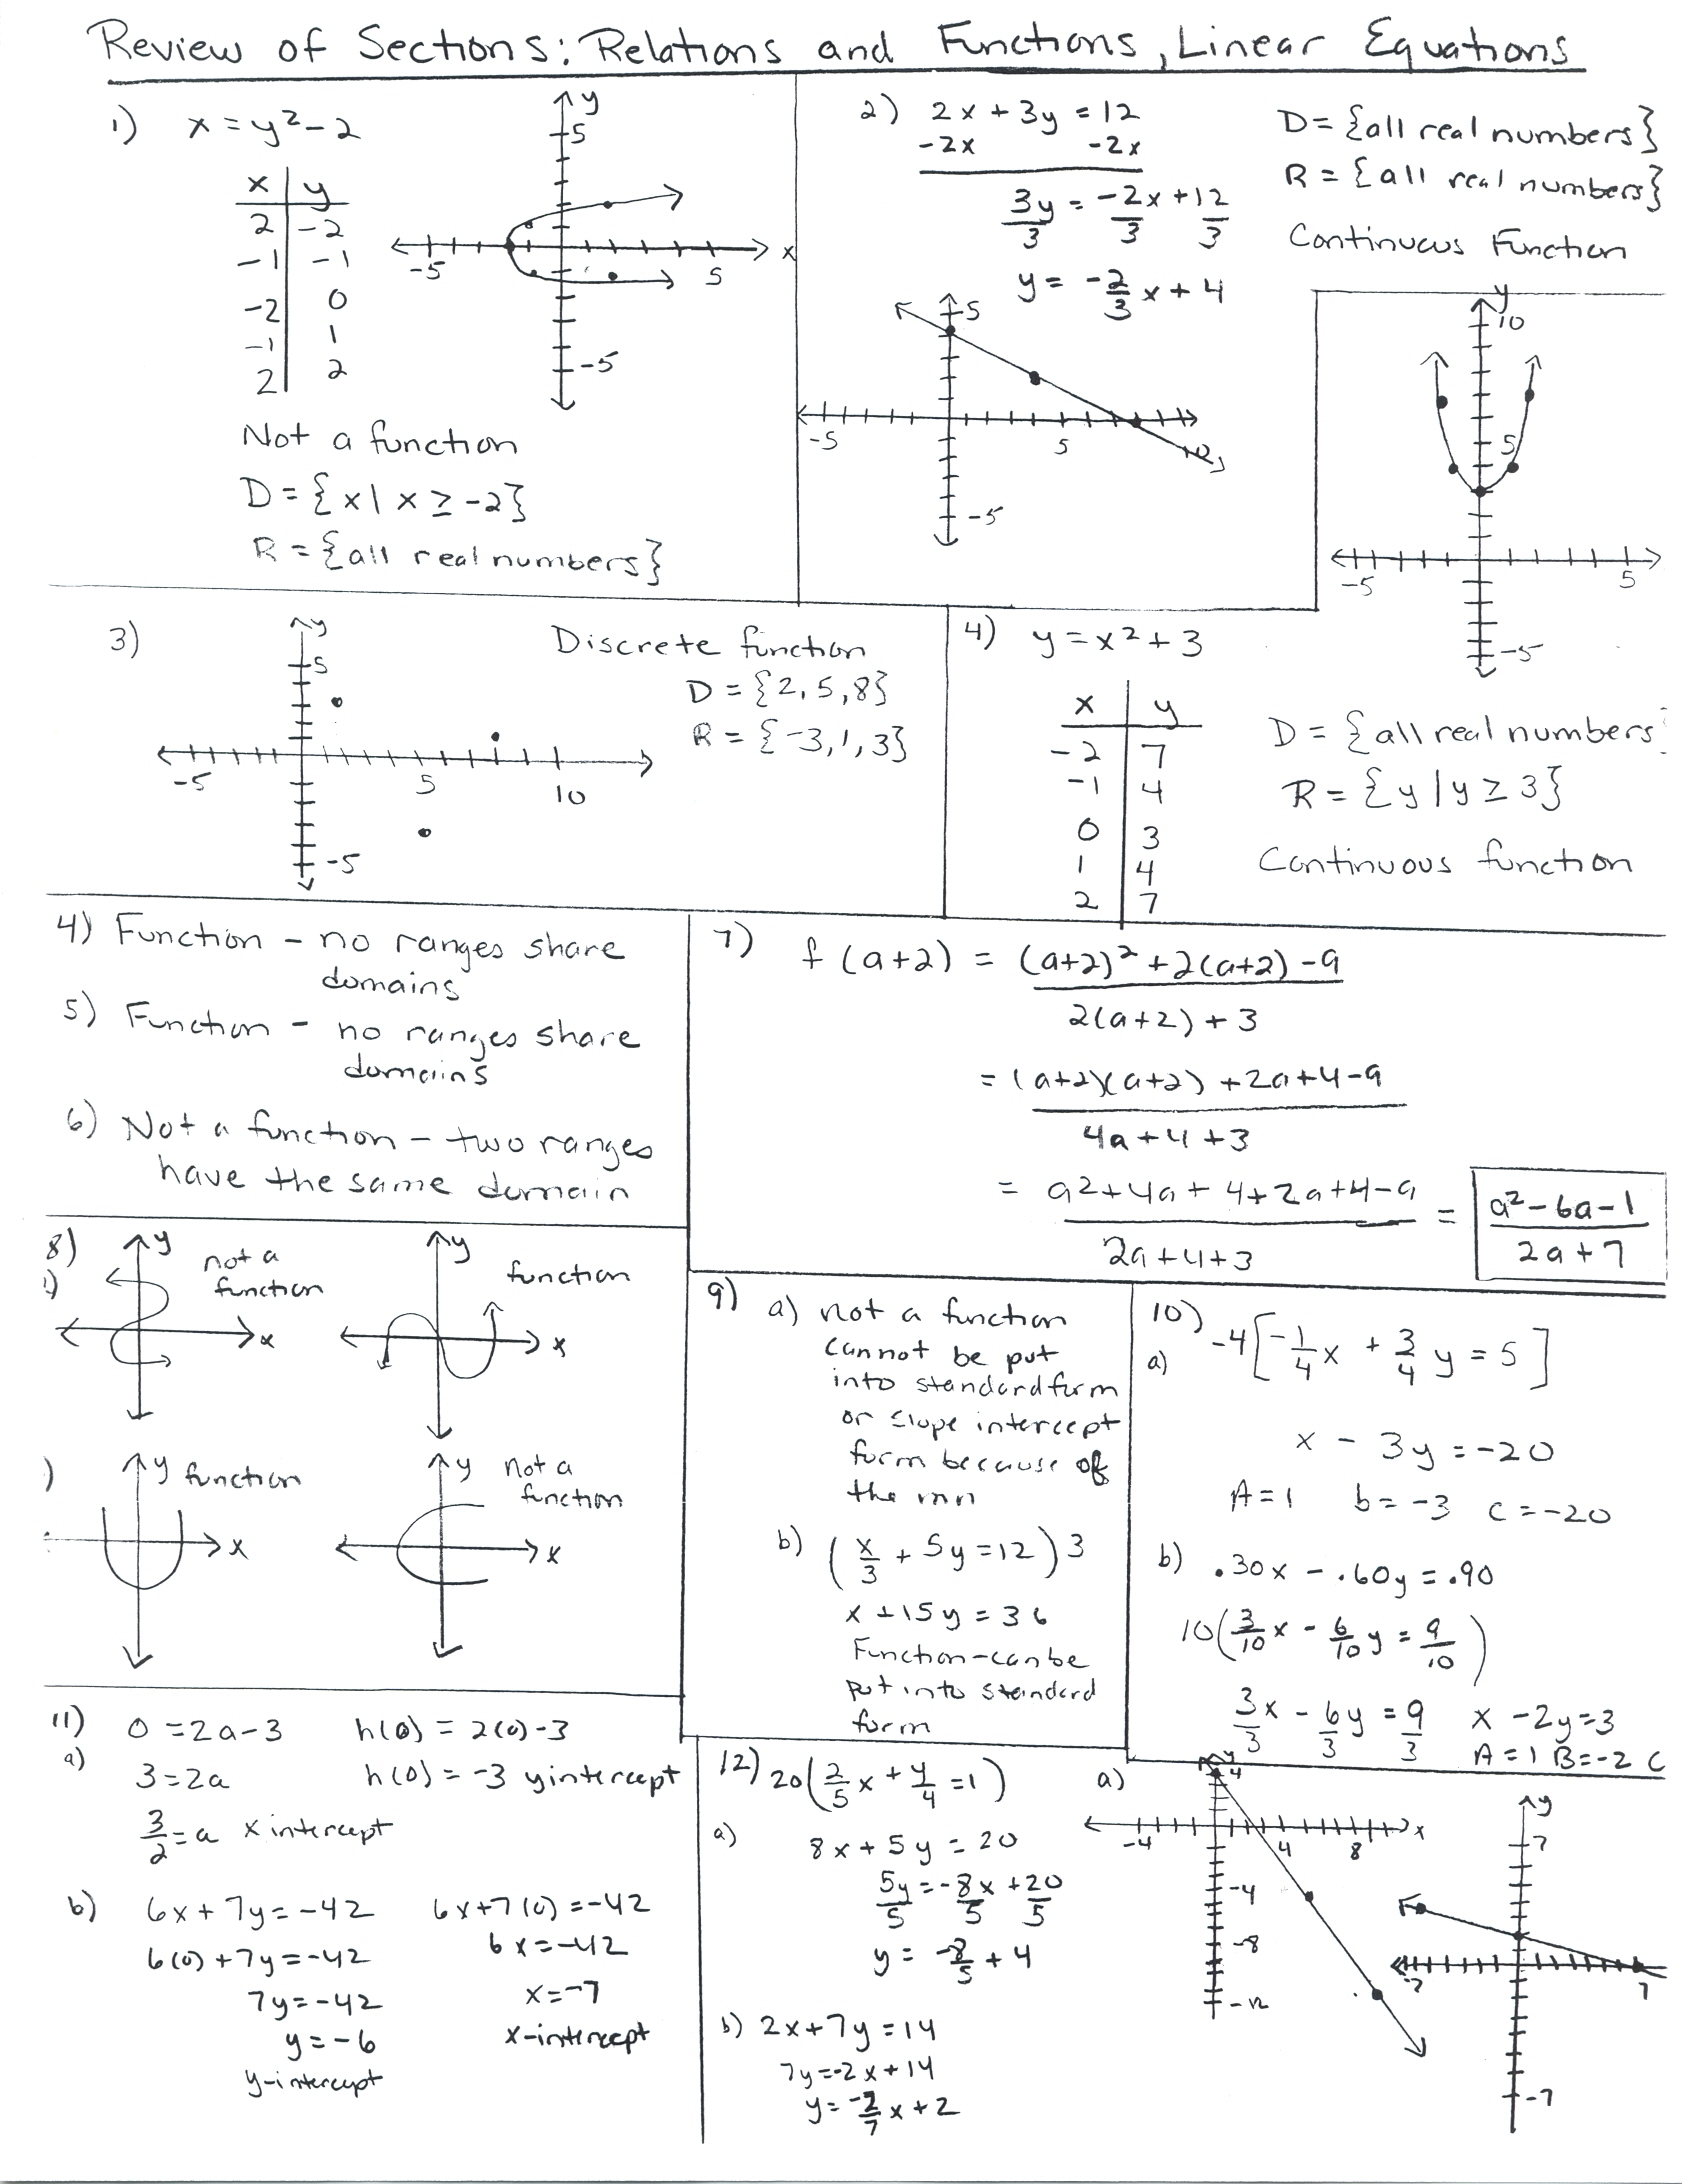 worksheet graphing linear functions worksheet functions and linear equations inequalities graphing answer key talkchannels practice worksheet - Graphing Linear Functions Worksheet